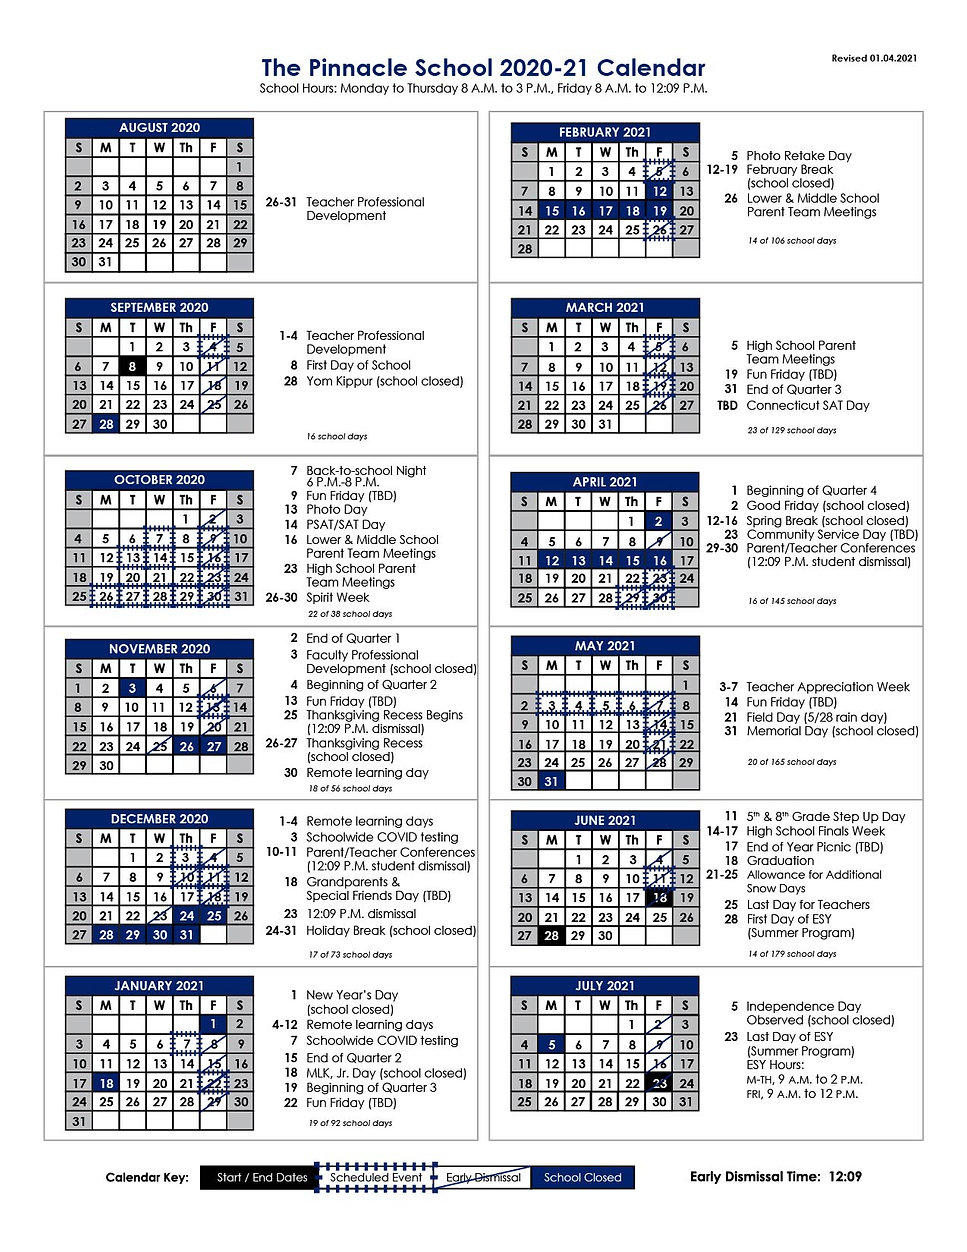 The Pinnacle School_2020-21 Calendar.jpg